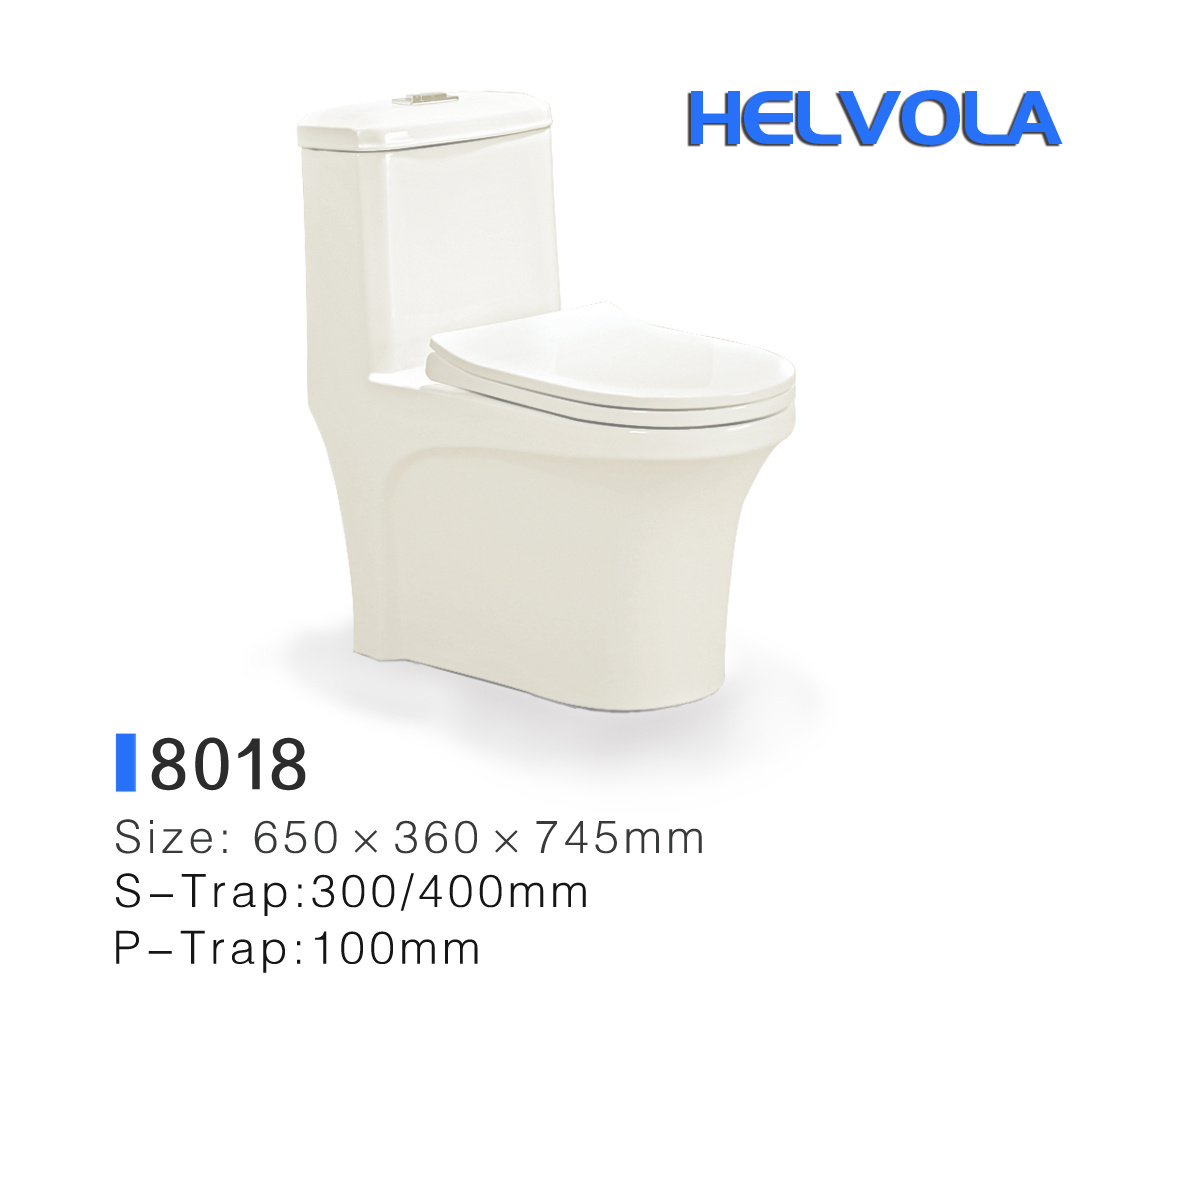 China Toilet, Toilet Manufacturers, Suppliers | Made-in-China.com